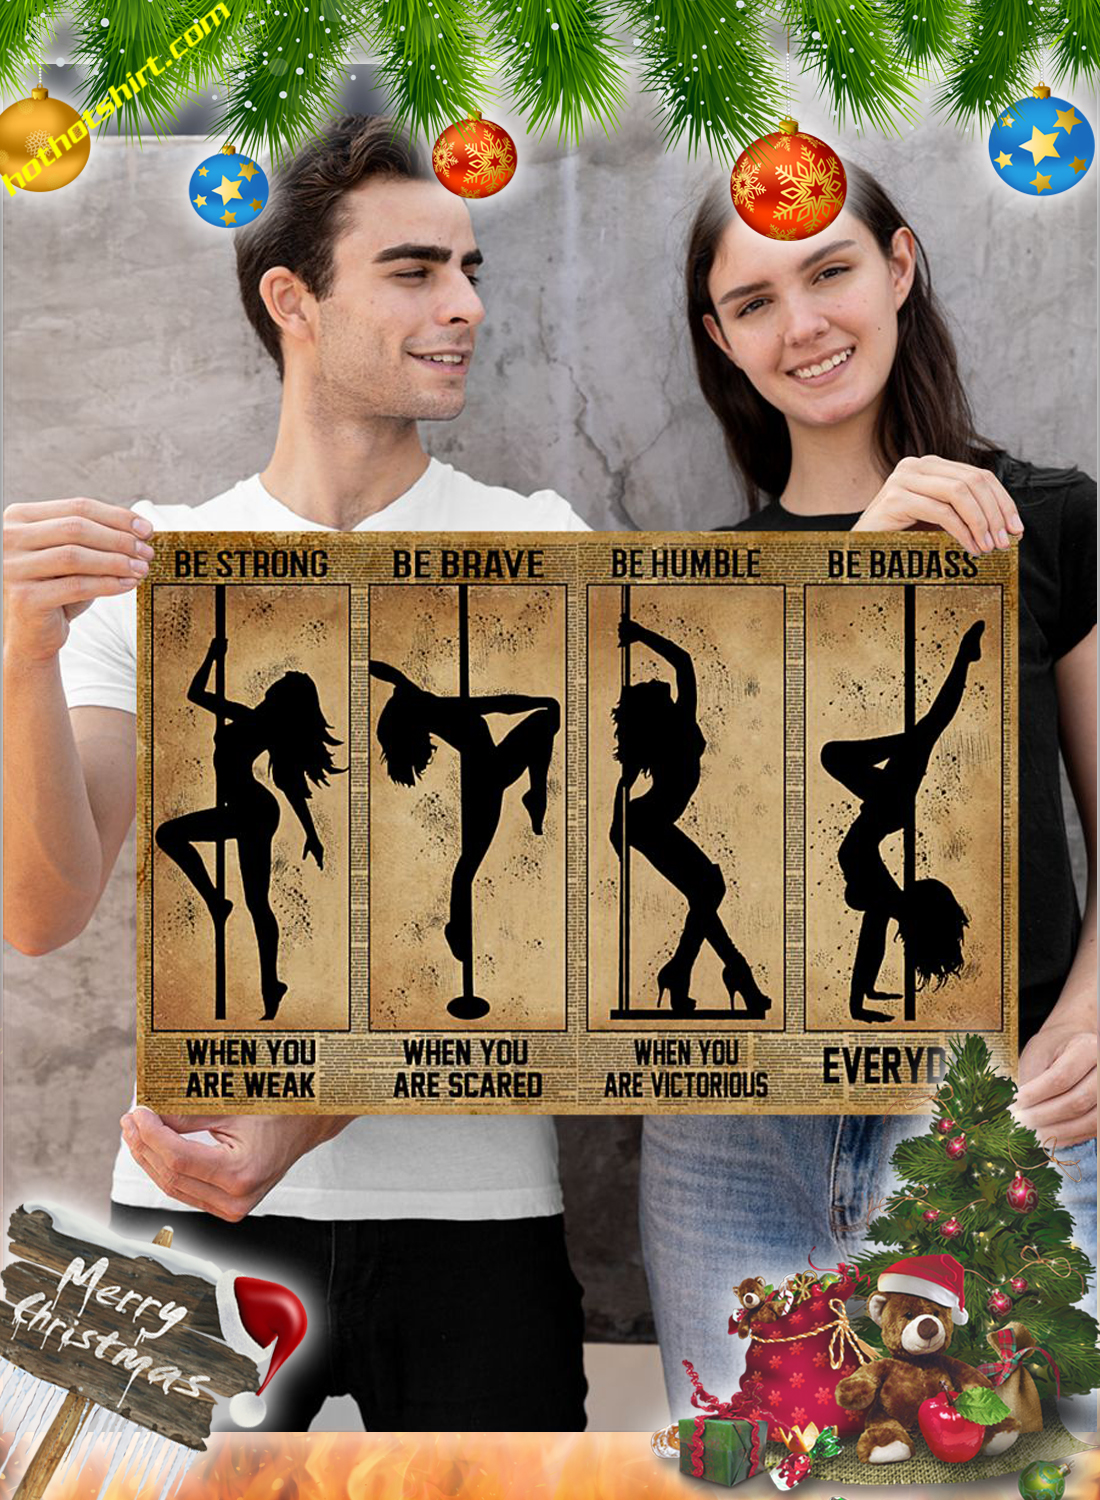 Pole Dance Be strong be brave be humble be badass poster 2